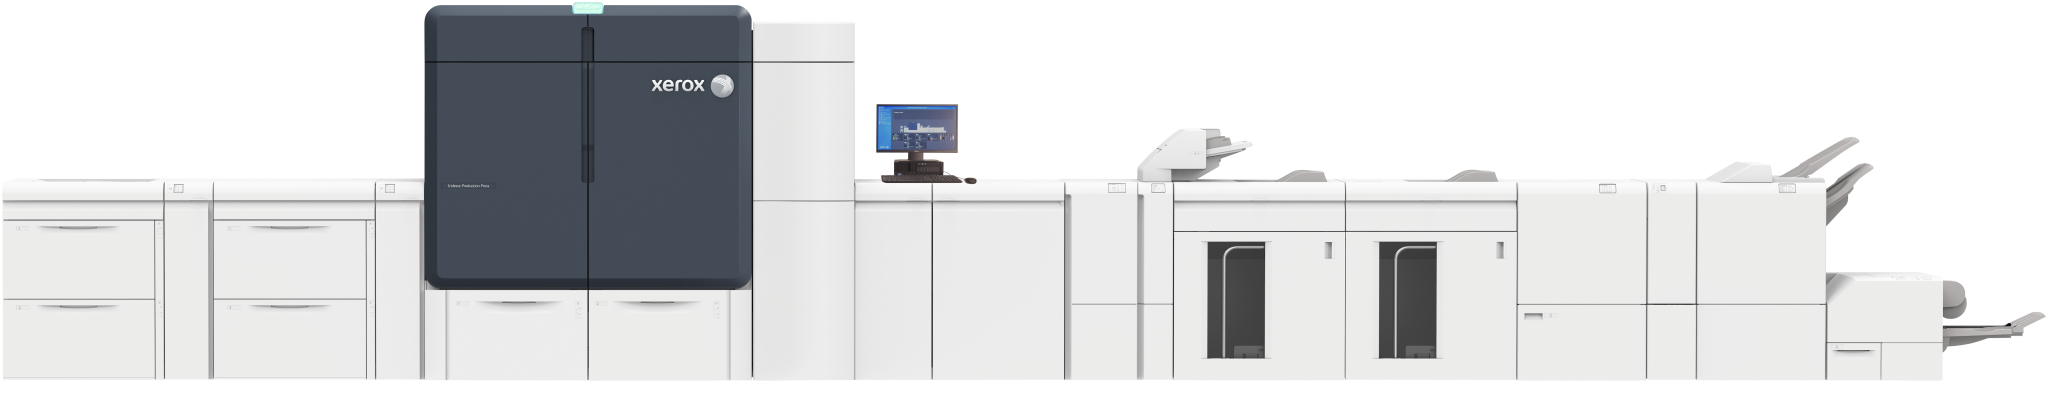 Xerox Iridesse Production Press Printer available at XCel Office of Oklahoma